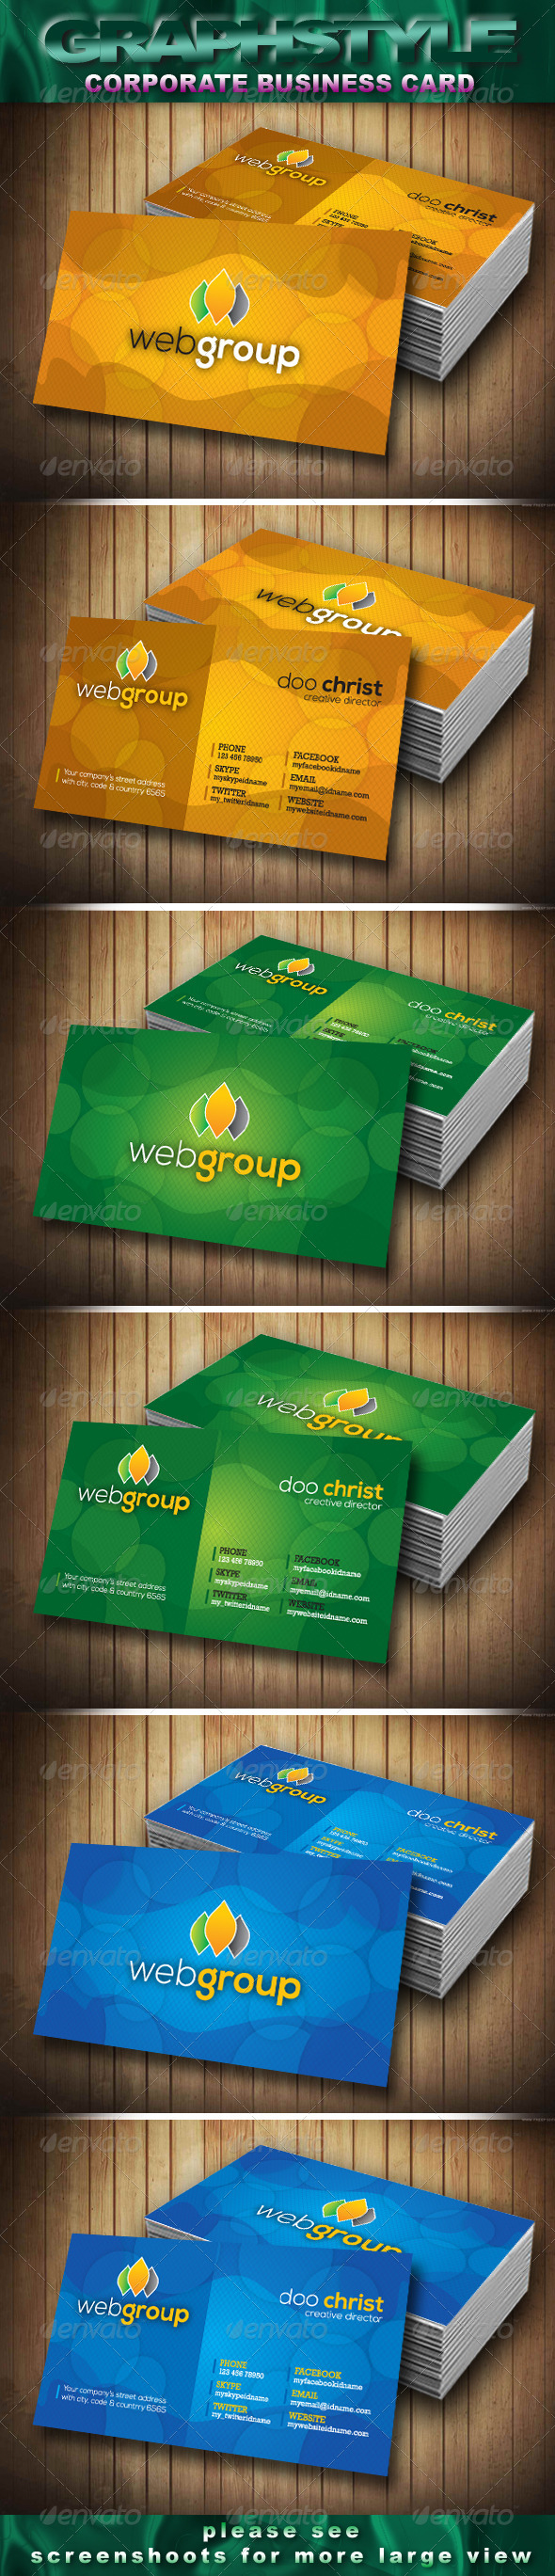 Webgroup Corporate Business Card - Corporate Business Cards